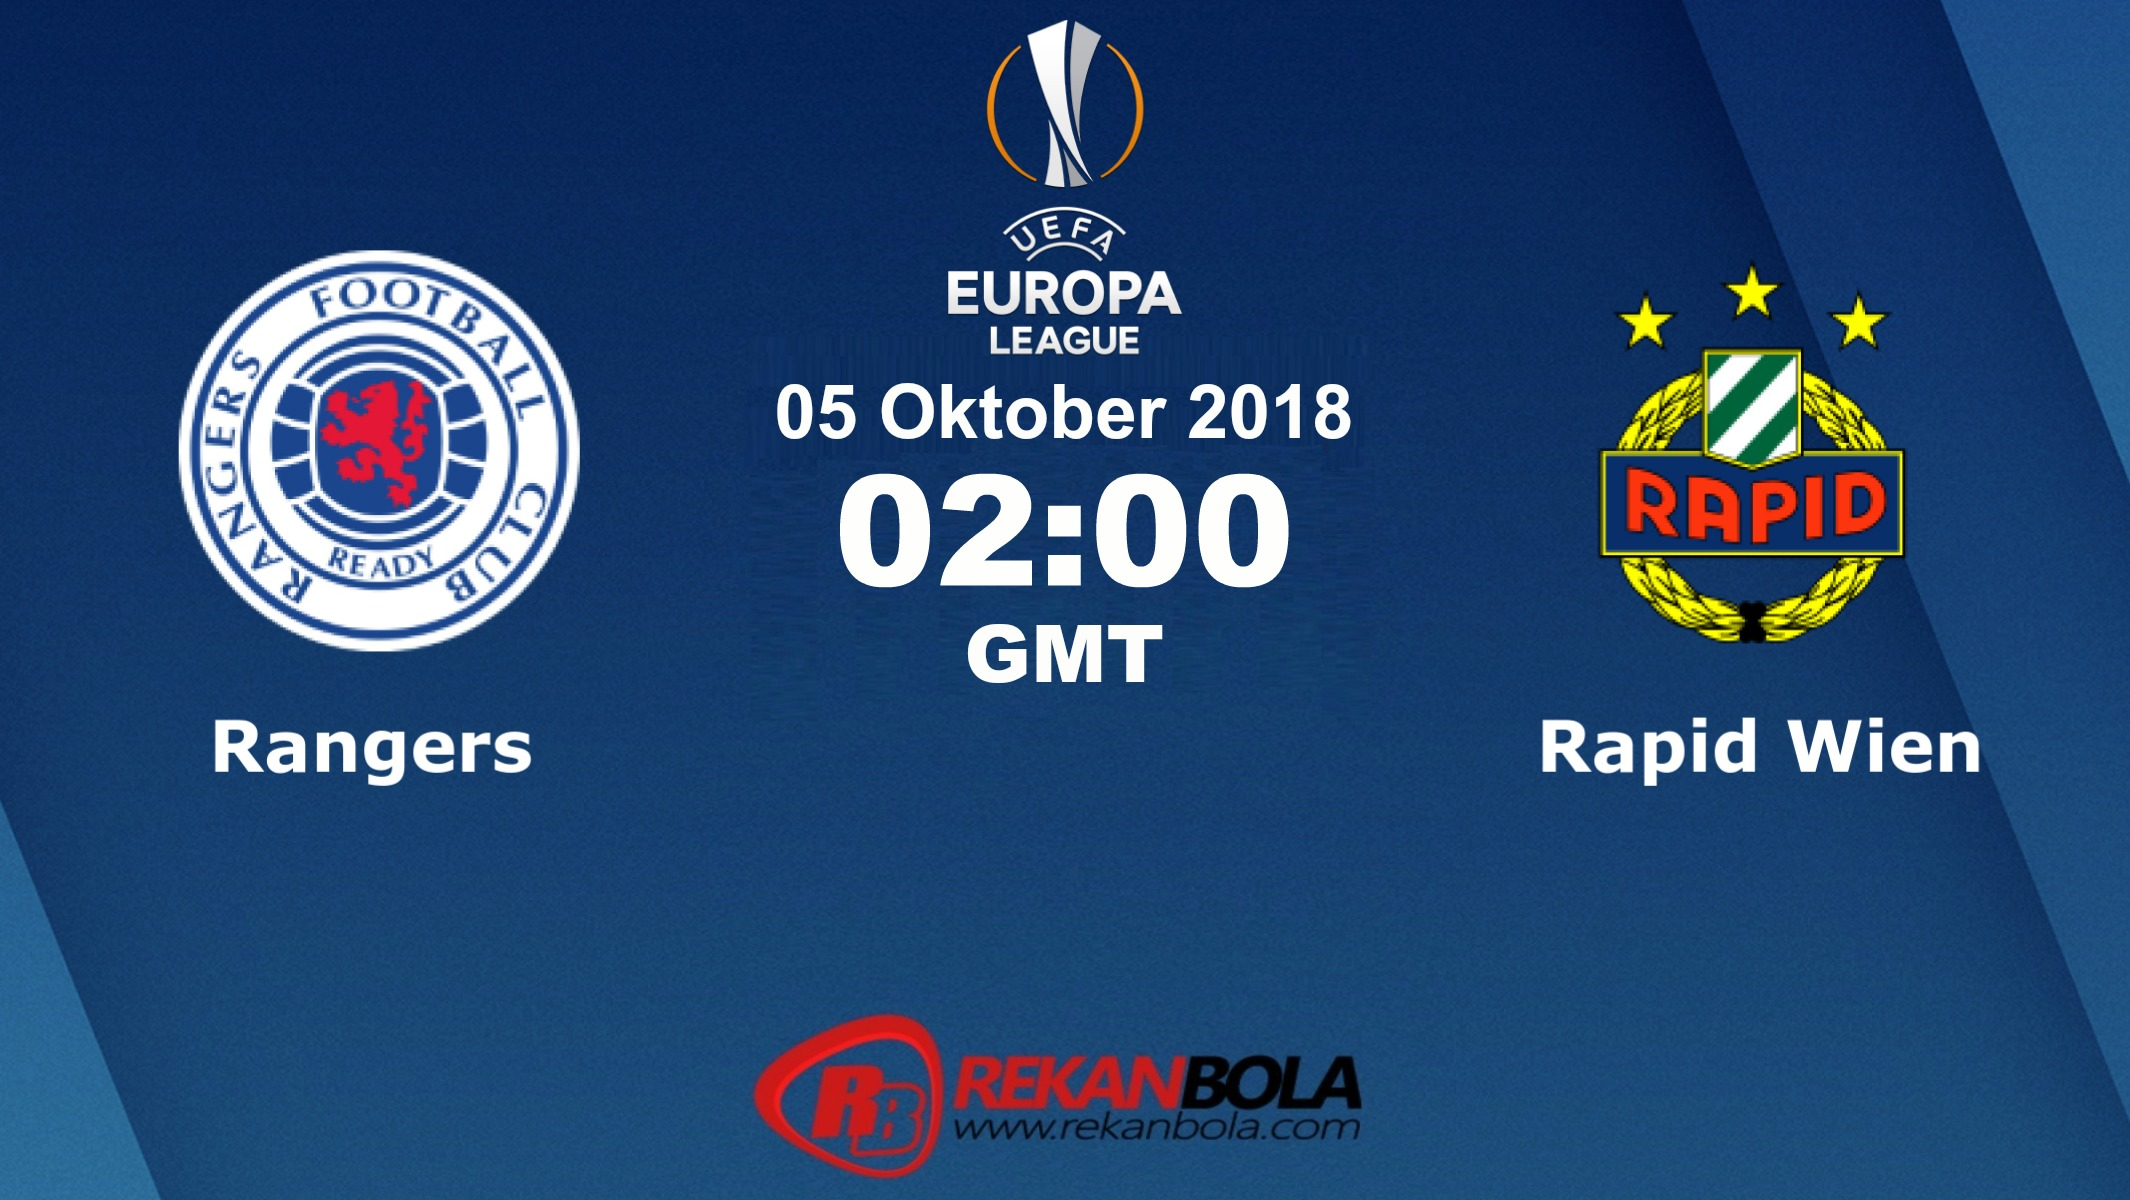 Nonton Siaran Live Streaming Rangers Vs Rapid 05 Oktober 2018